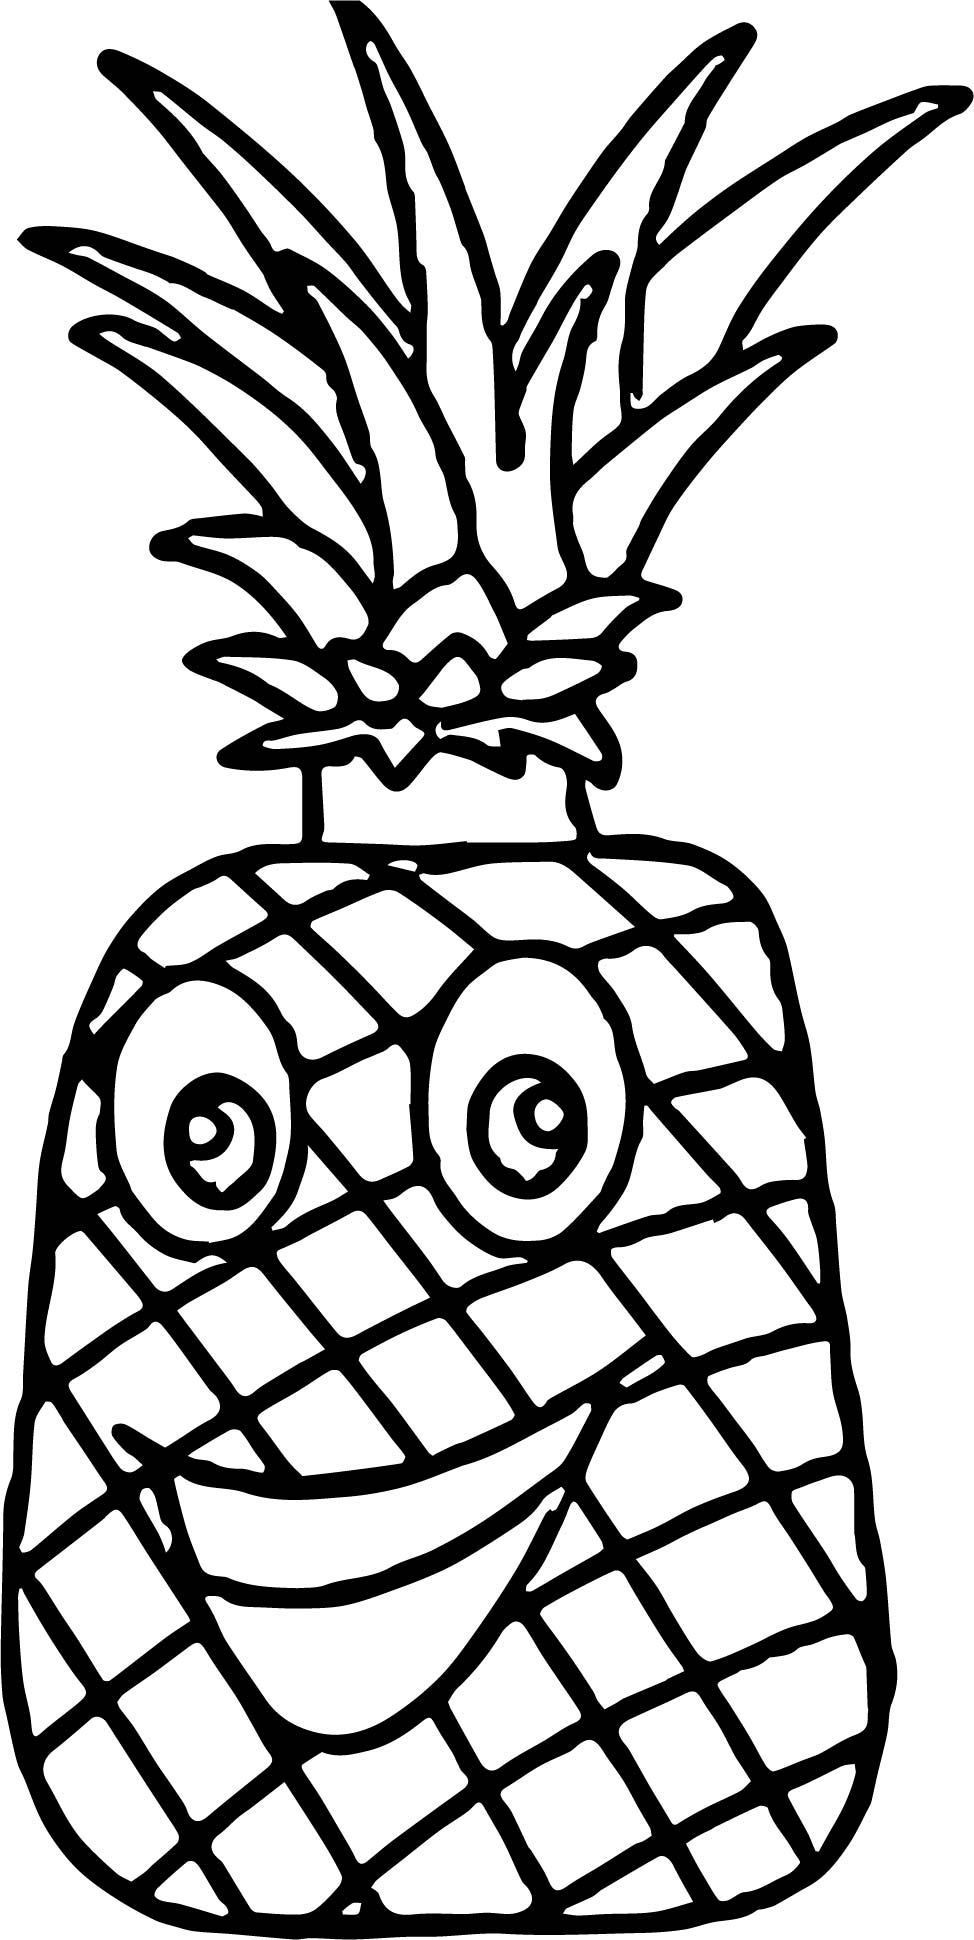 Pineapple Characters Cartoon Coloring Page